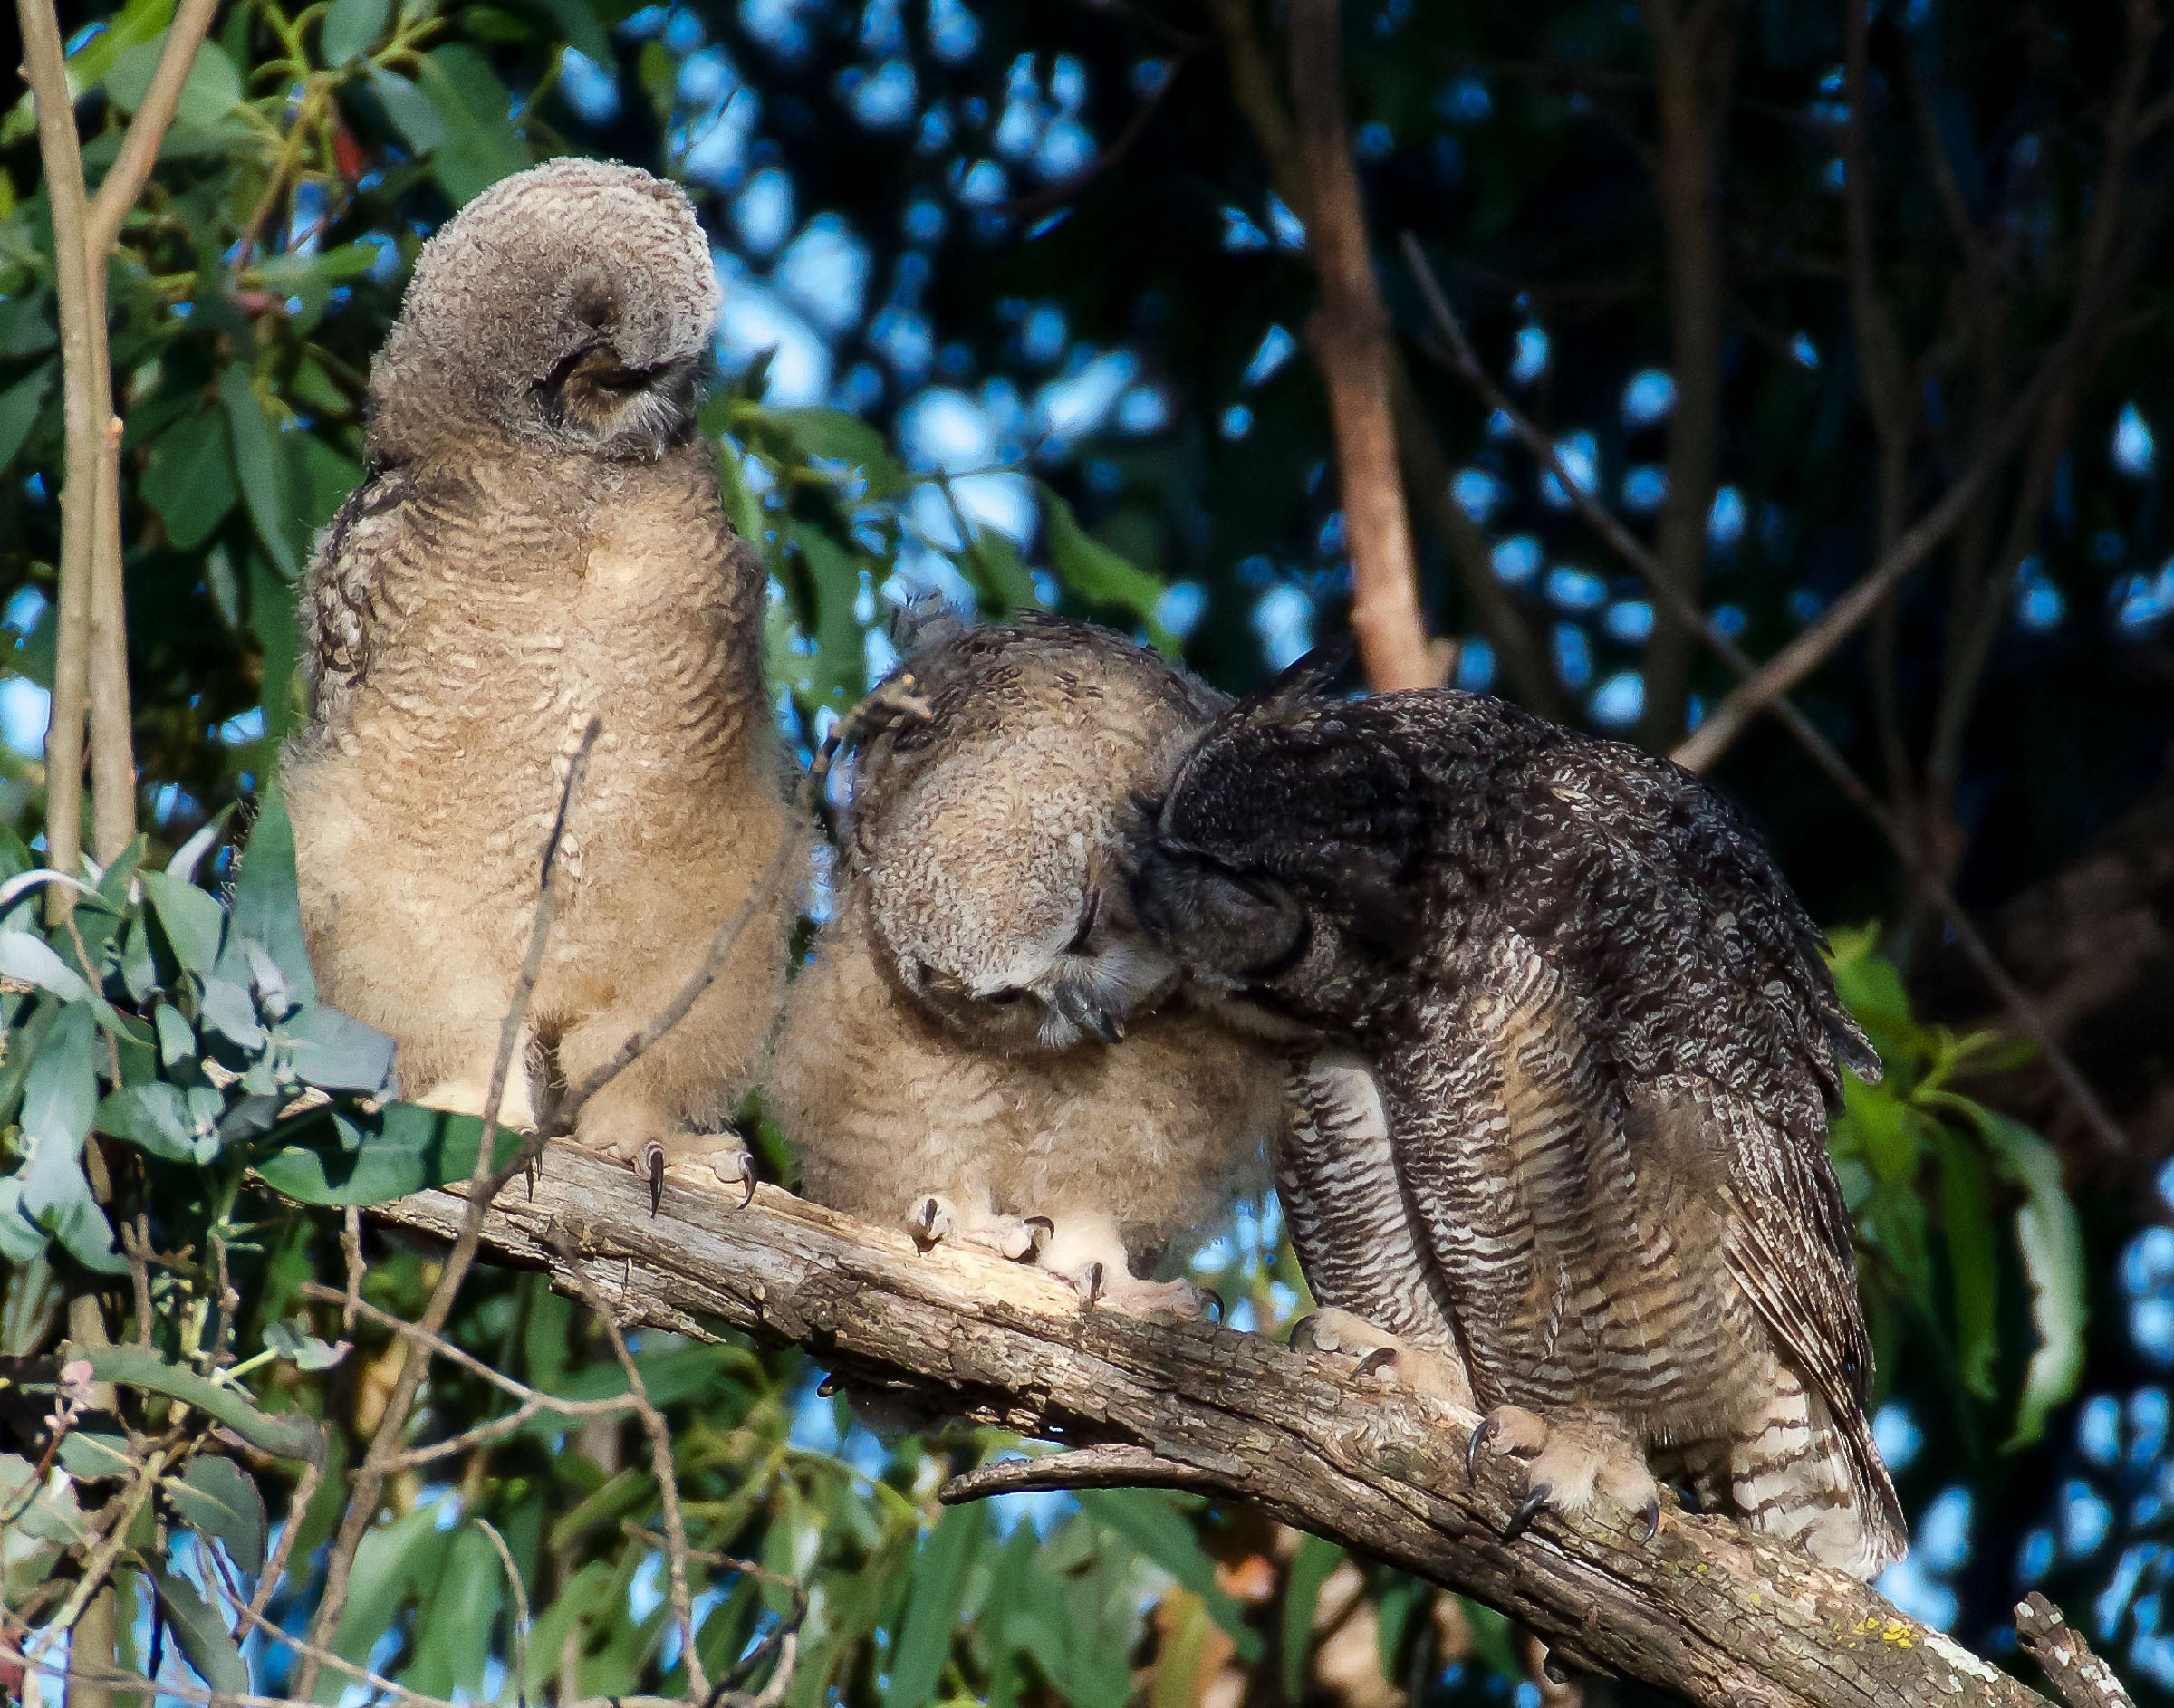 mother-great-horned-owl-grooming-owlets-5.jpg